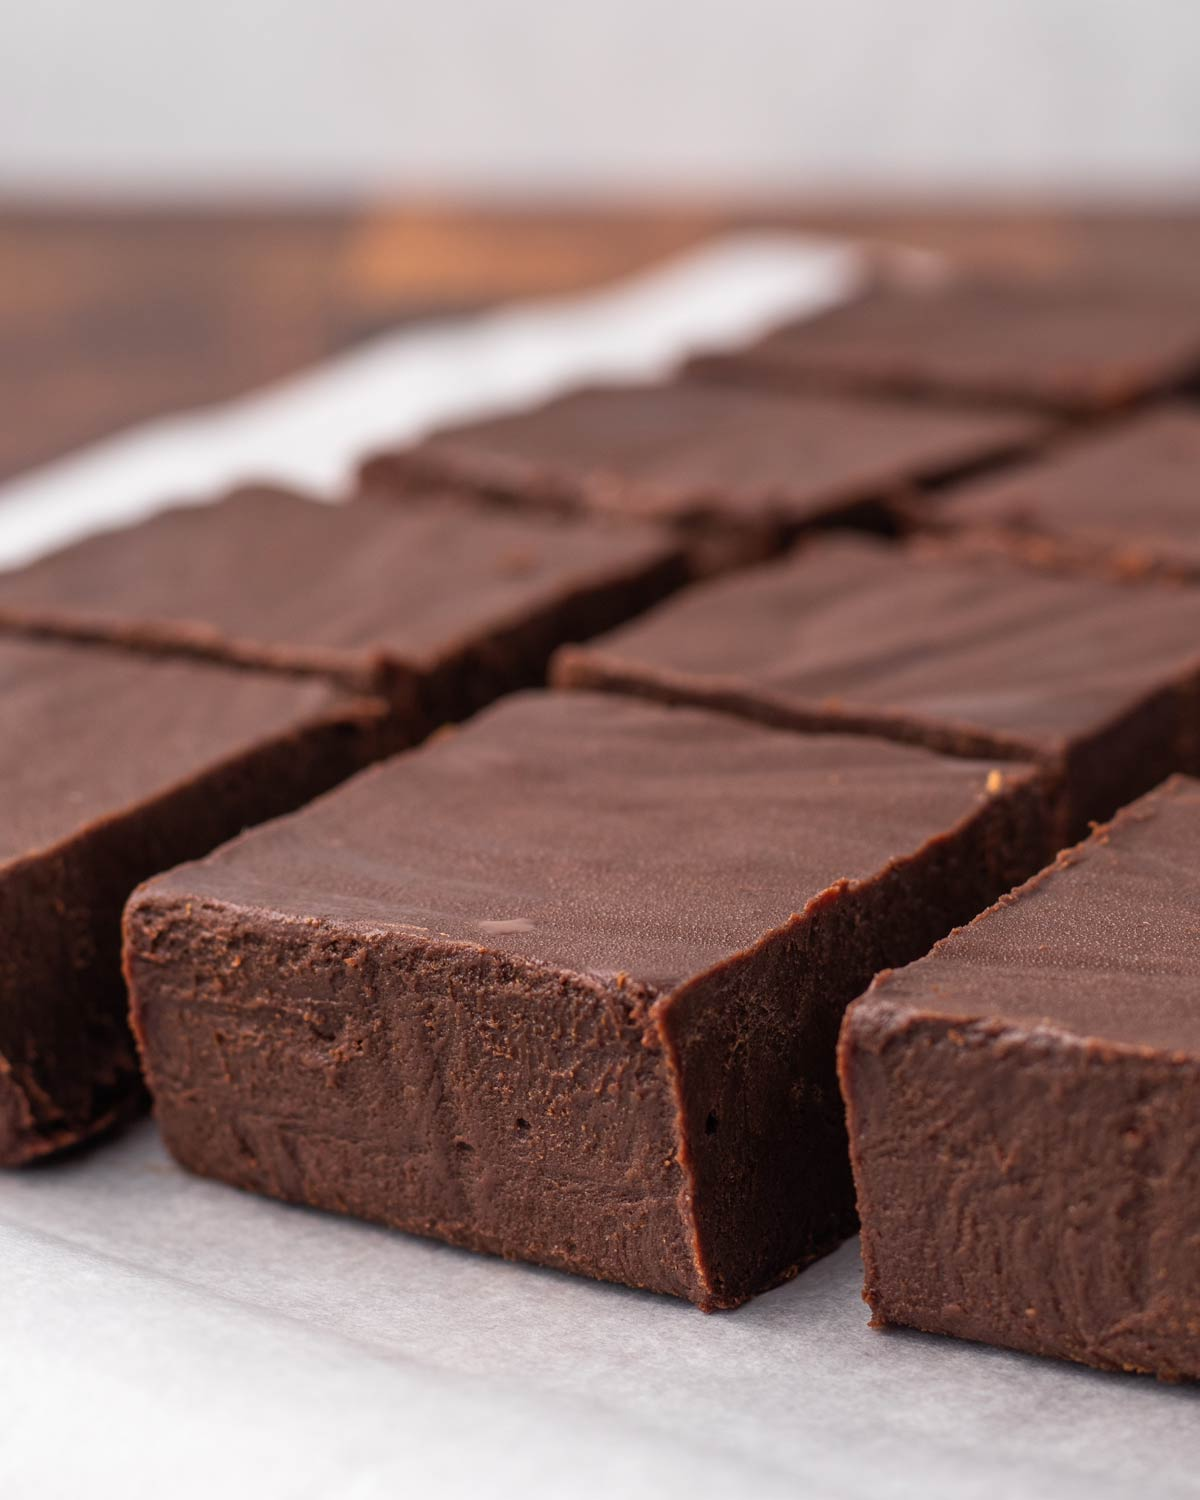 Fudge sliced into squares on parchment paper.